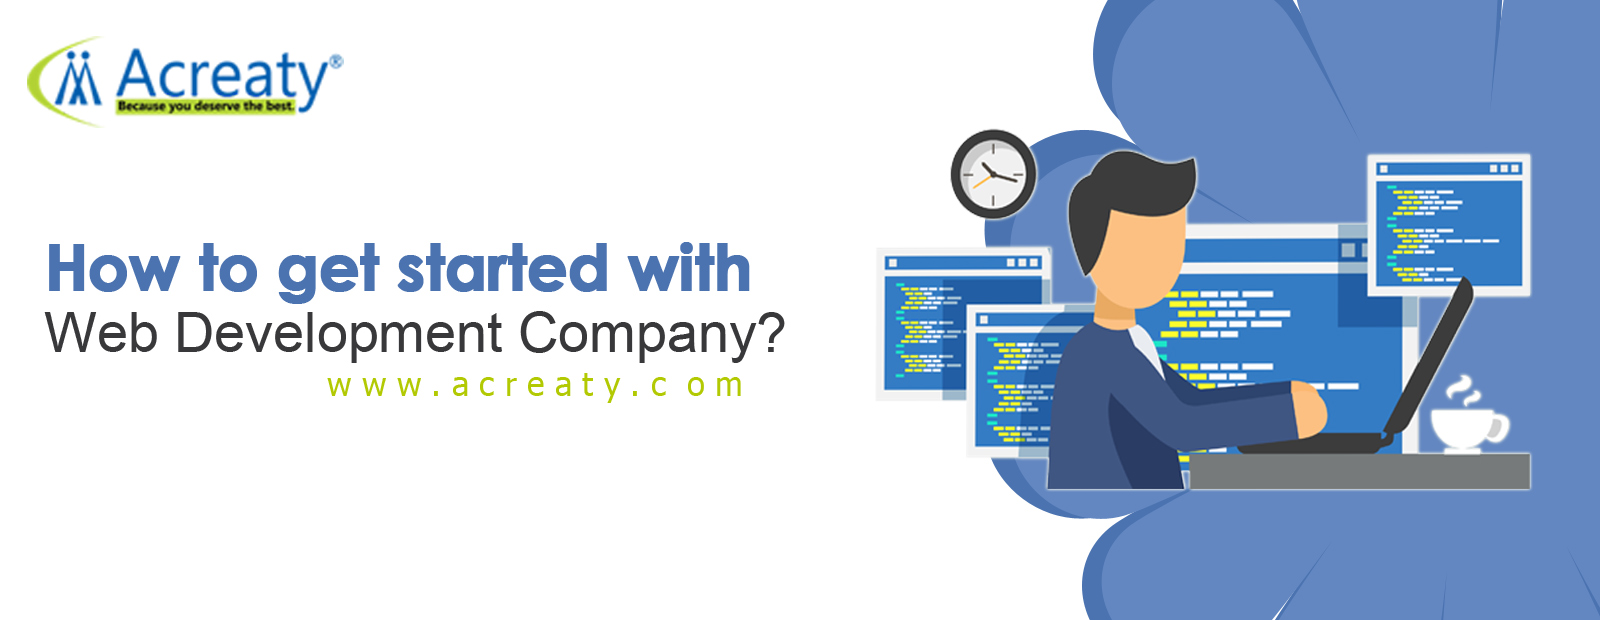 How to get started with web Development Company?